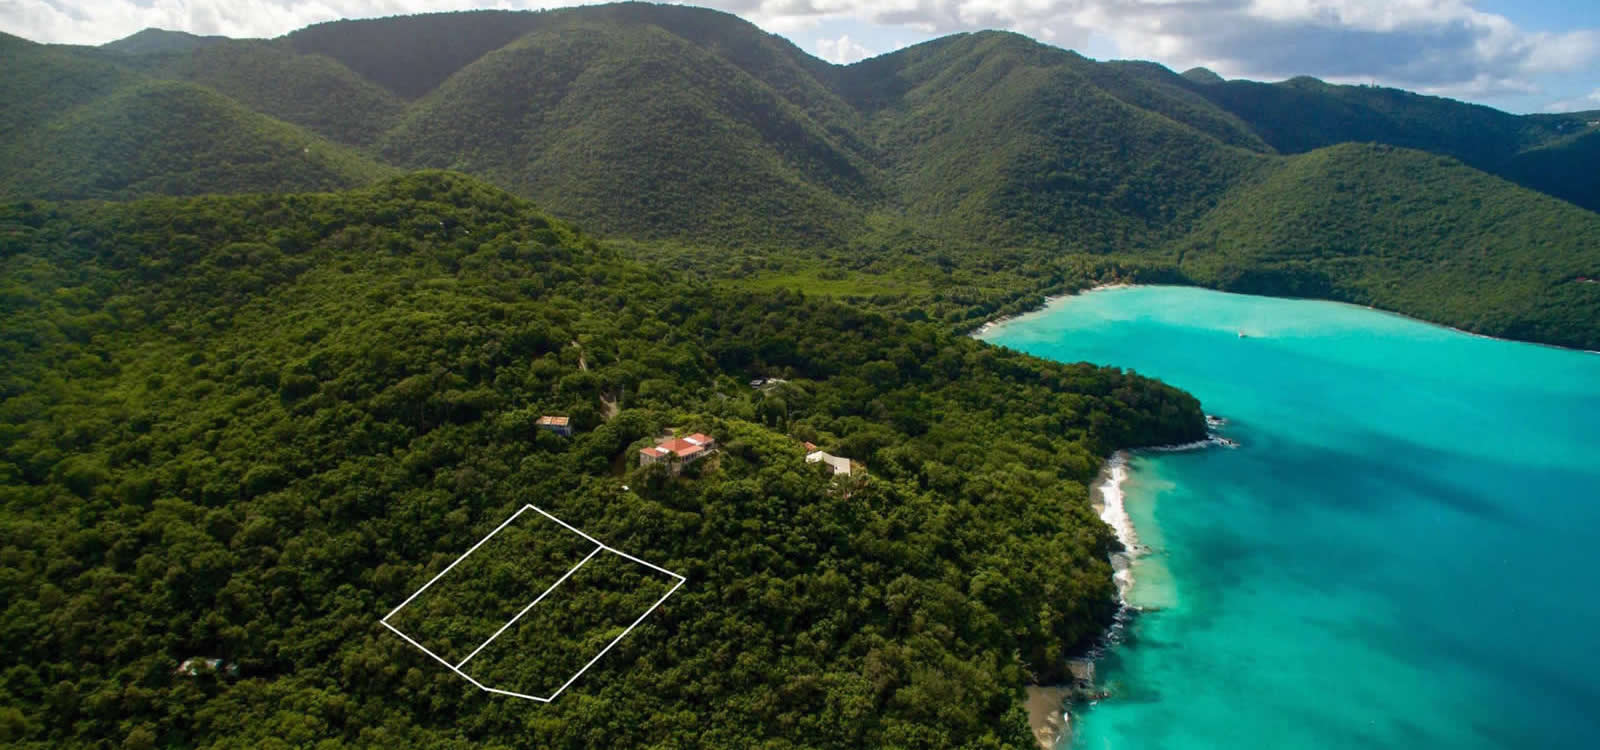 Us virgin island buisiness for sale was specially